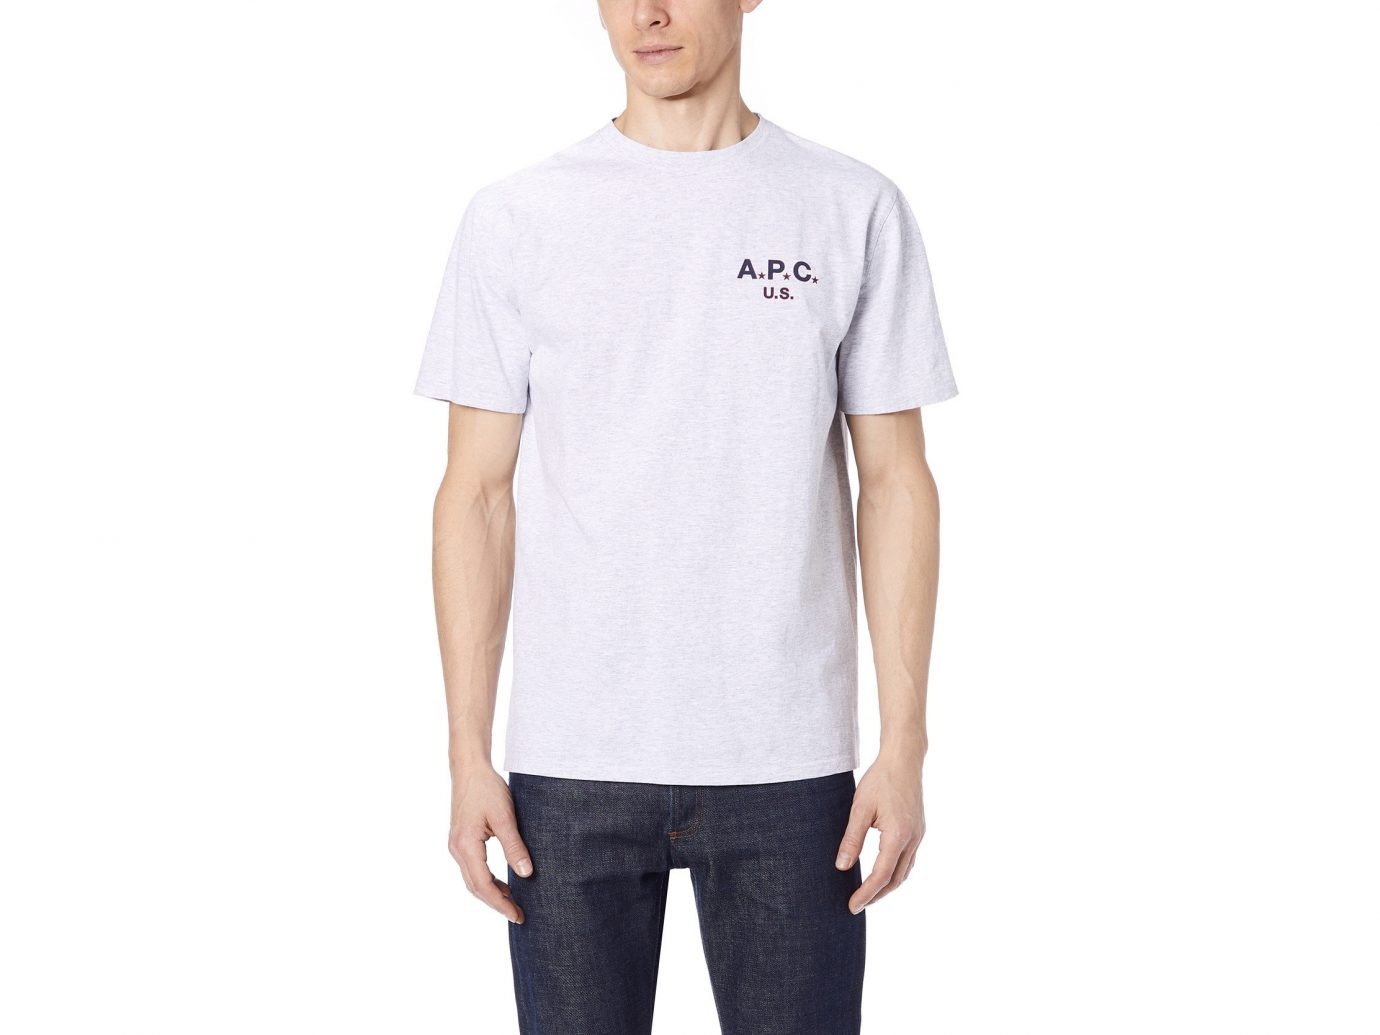 18 Best Graphic Tees For Men And Women